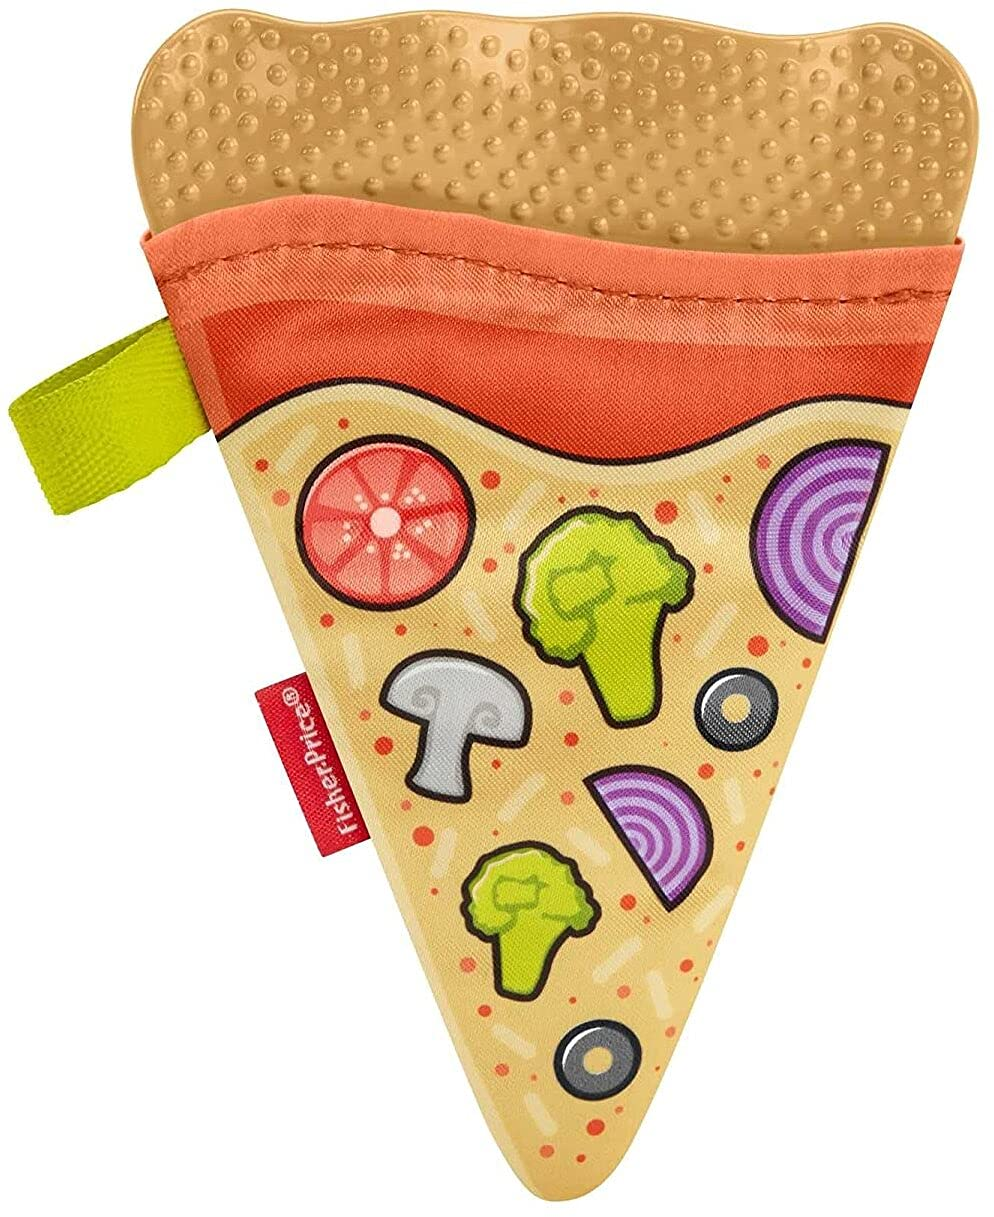 New Orleans Mall Spring new work Fisher-Price Pizza Teether